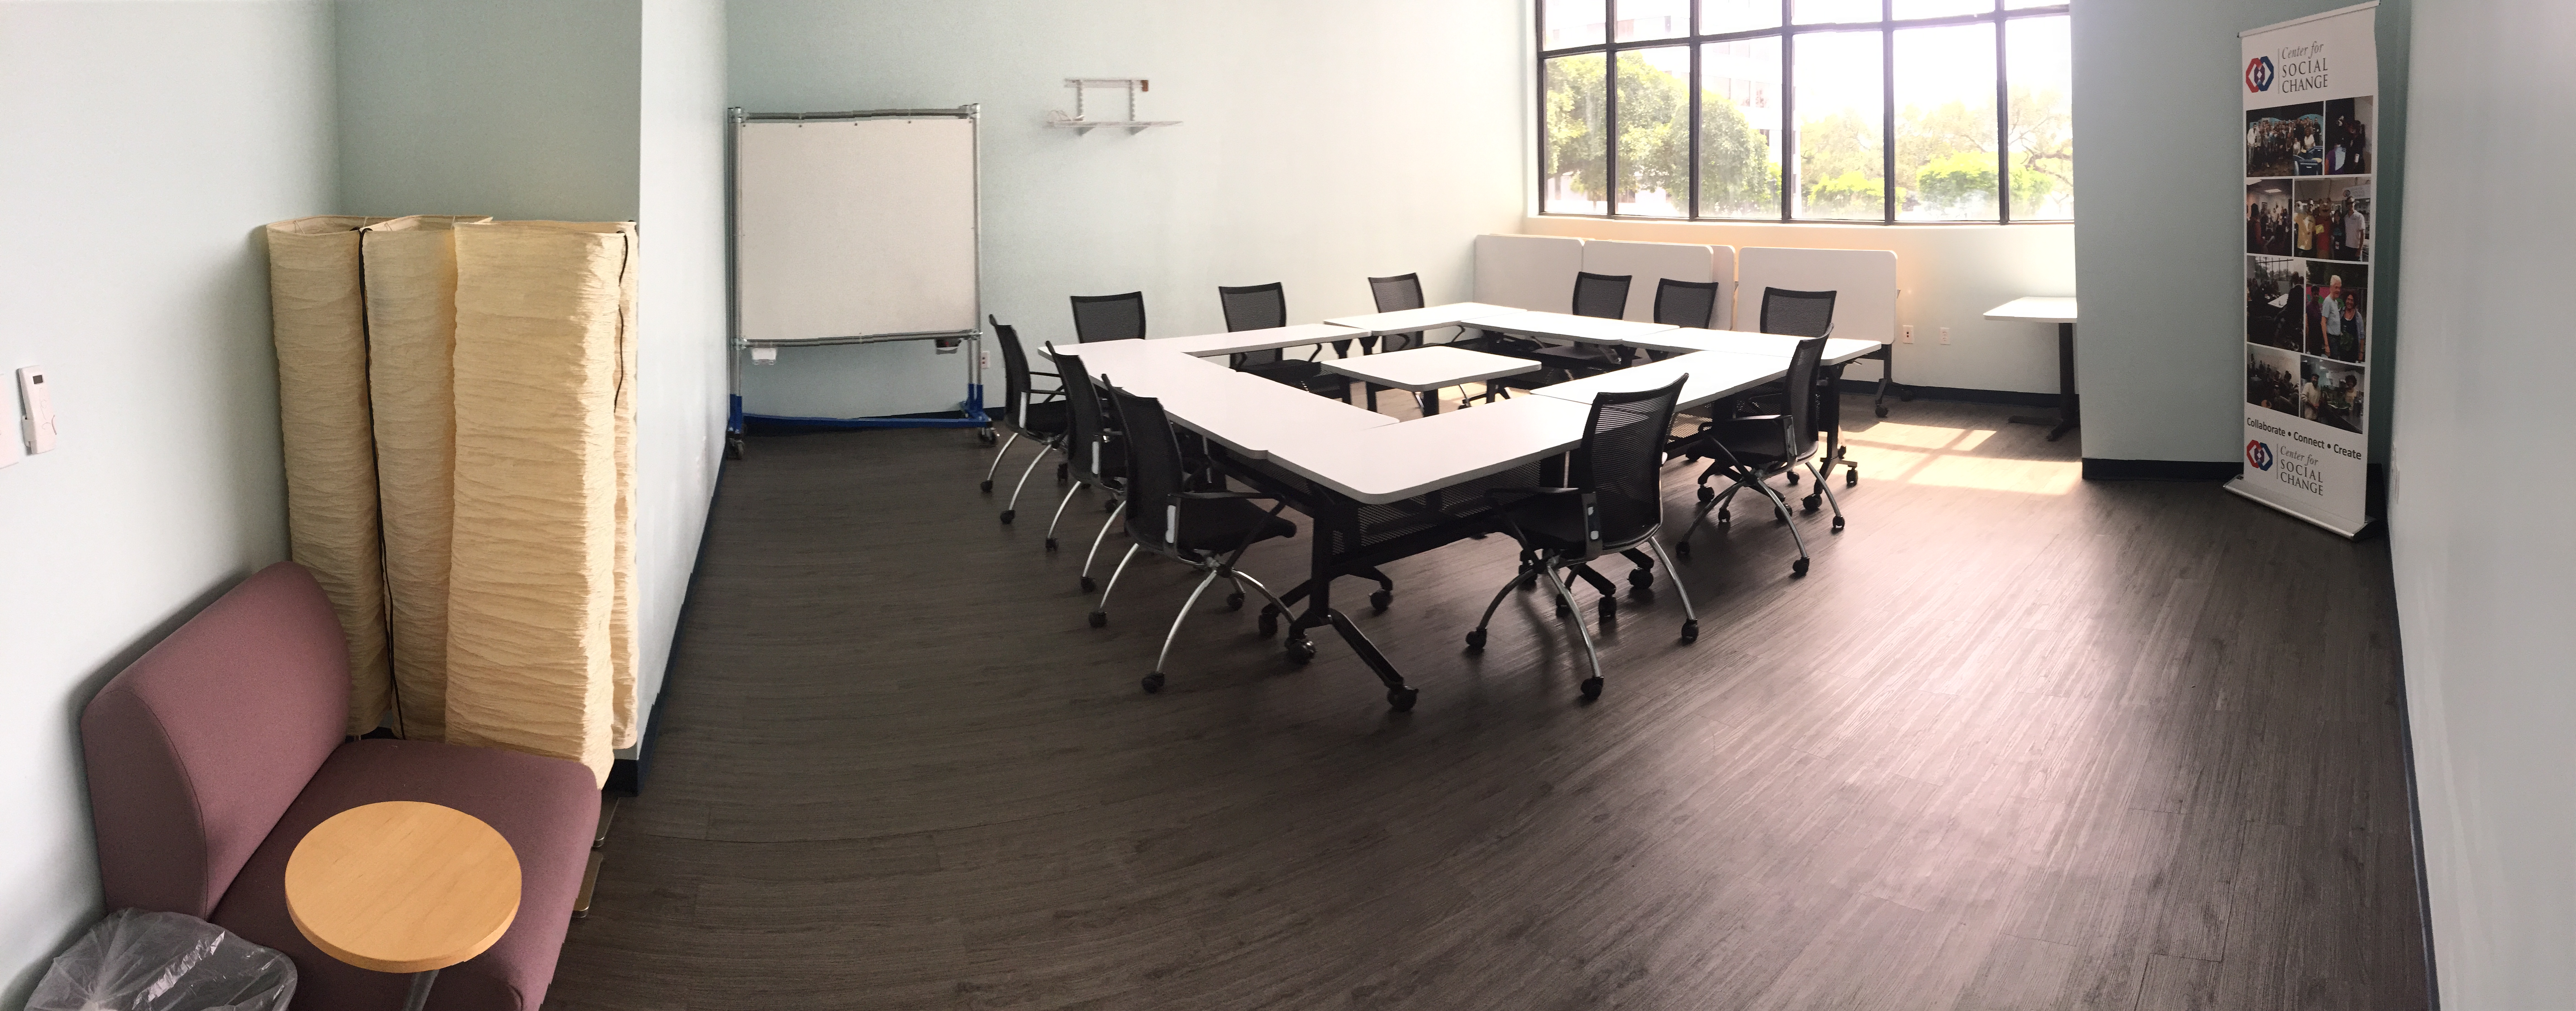 Rent Conference Room Nonprofits Miami 2F